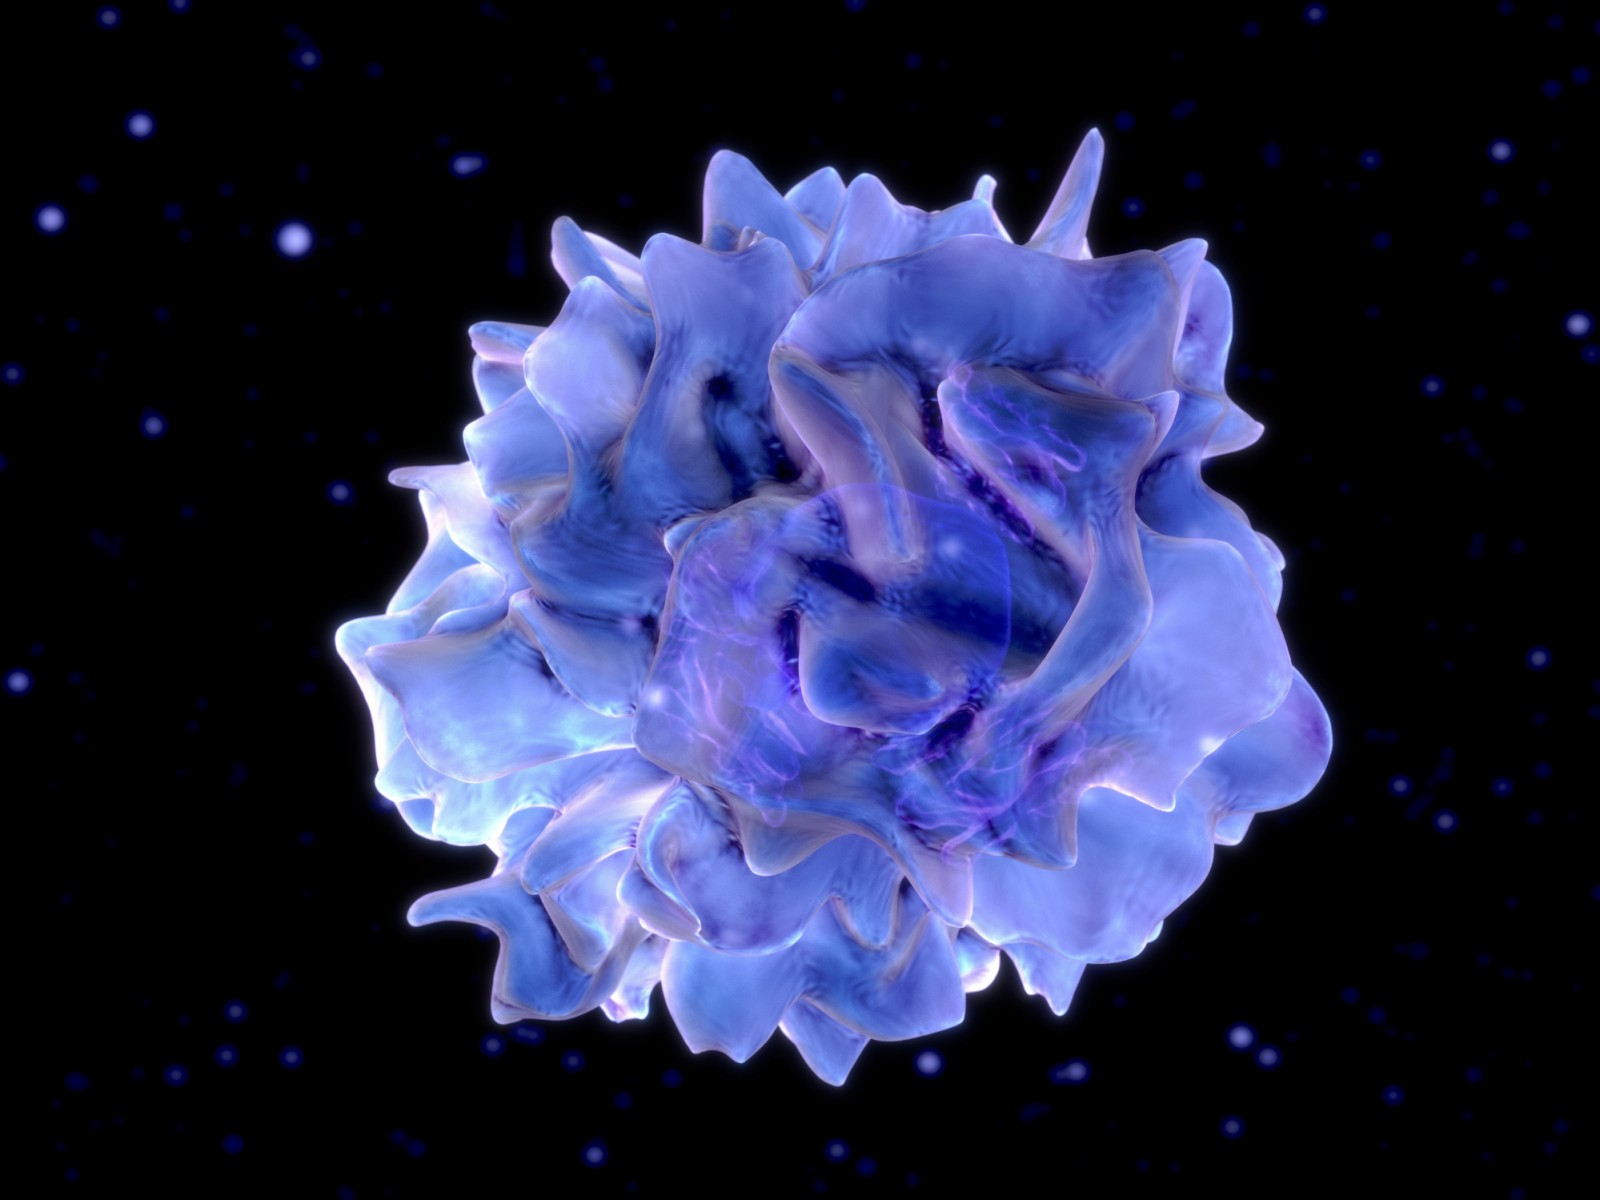 Computer illustration of dendritic cells, a component of the body's immune system. Illustration by Getty.